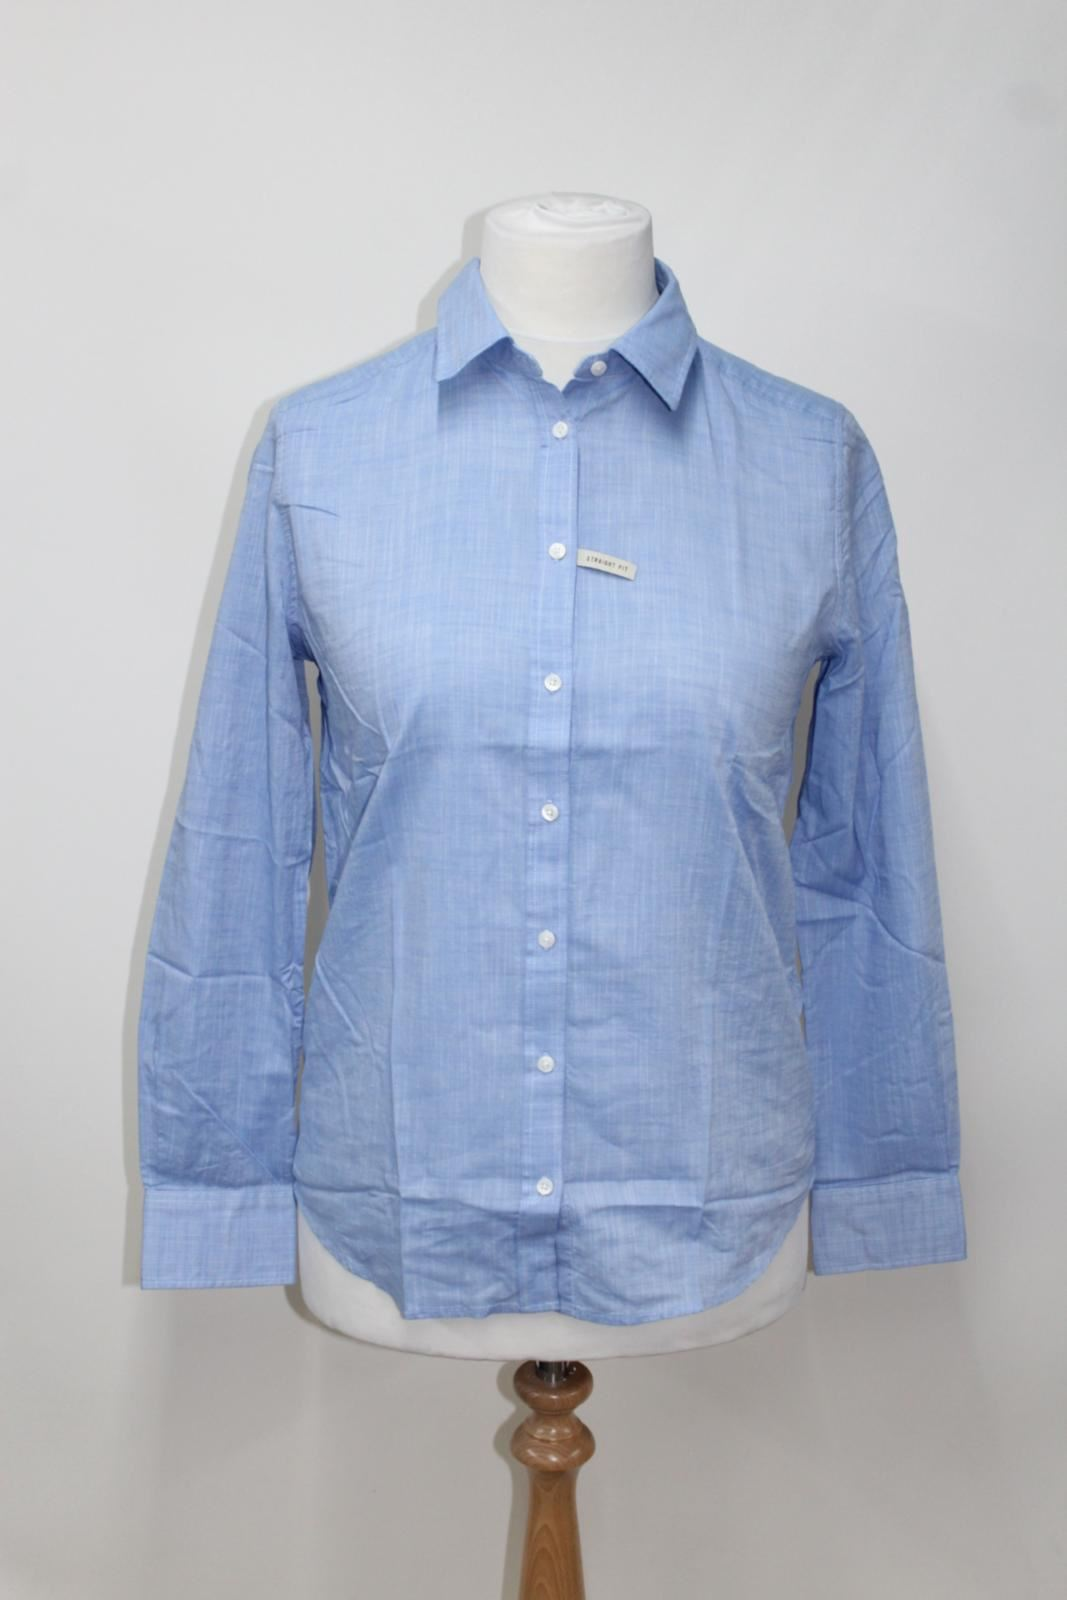 BNWT R.M. WILLIAM Rachel Donna Blu Cotone a Maniche Lunghe Camicia Button UK8